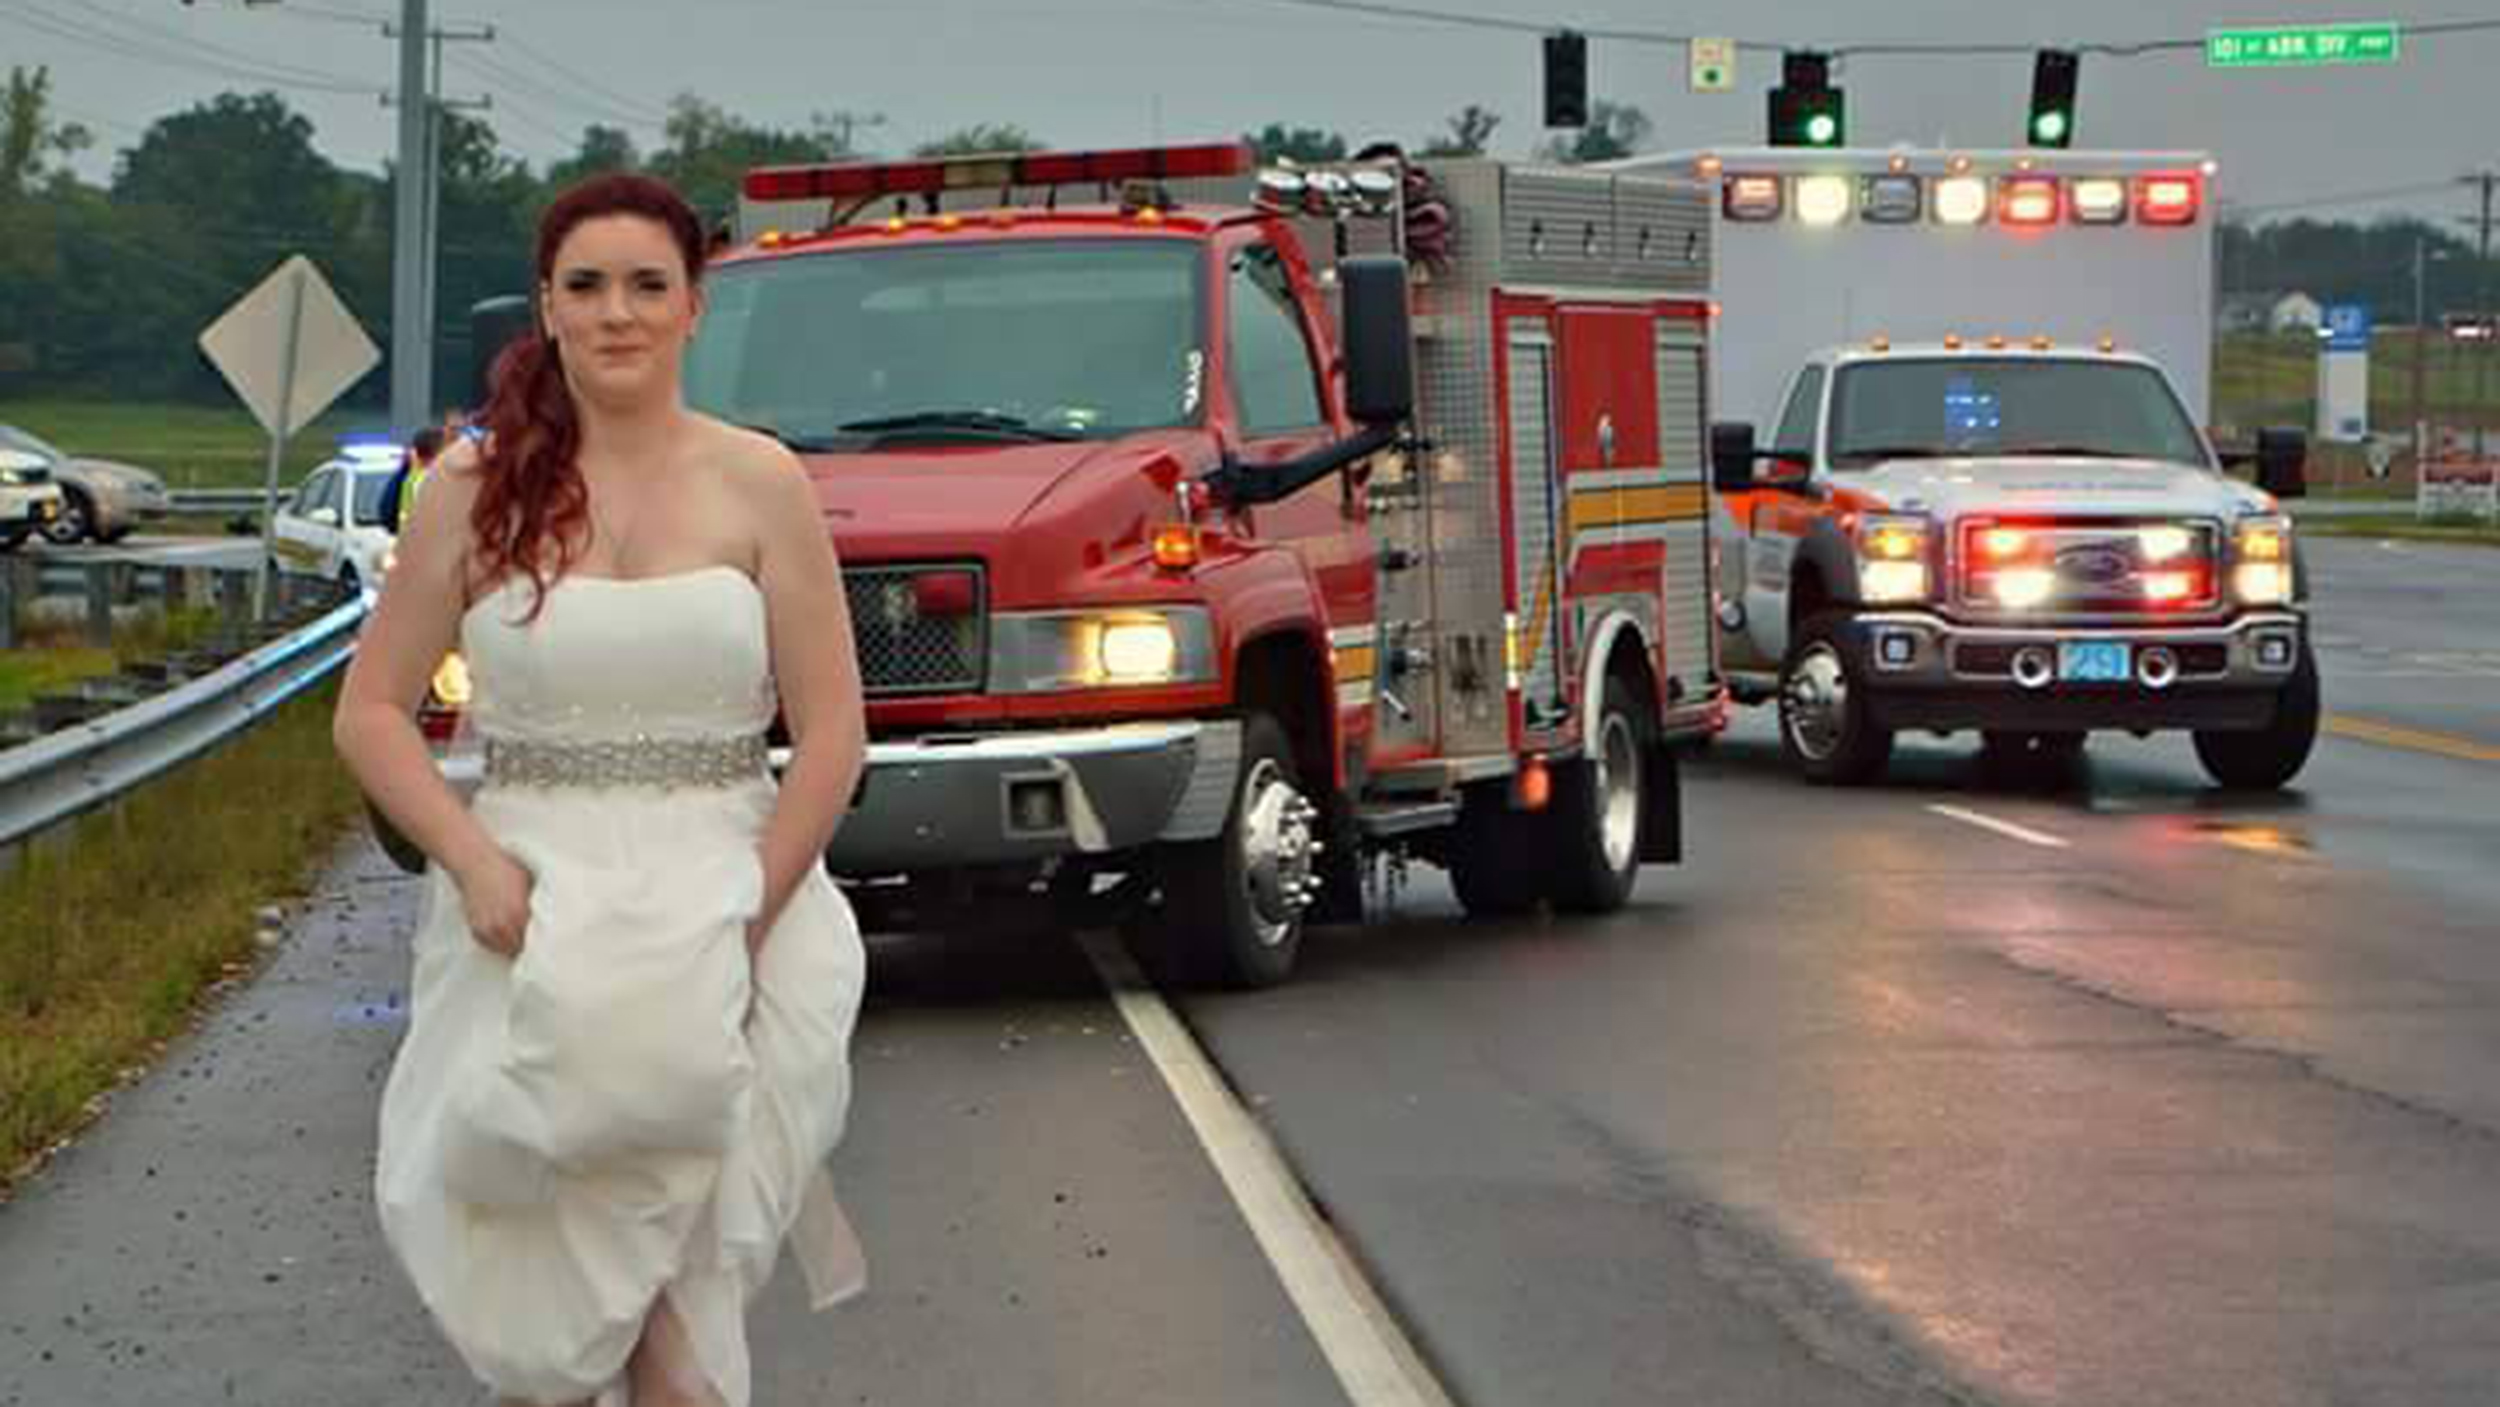 Car Wrecks Today: Paramedic Bride Rushes To Help Family In Car Crash On